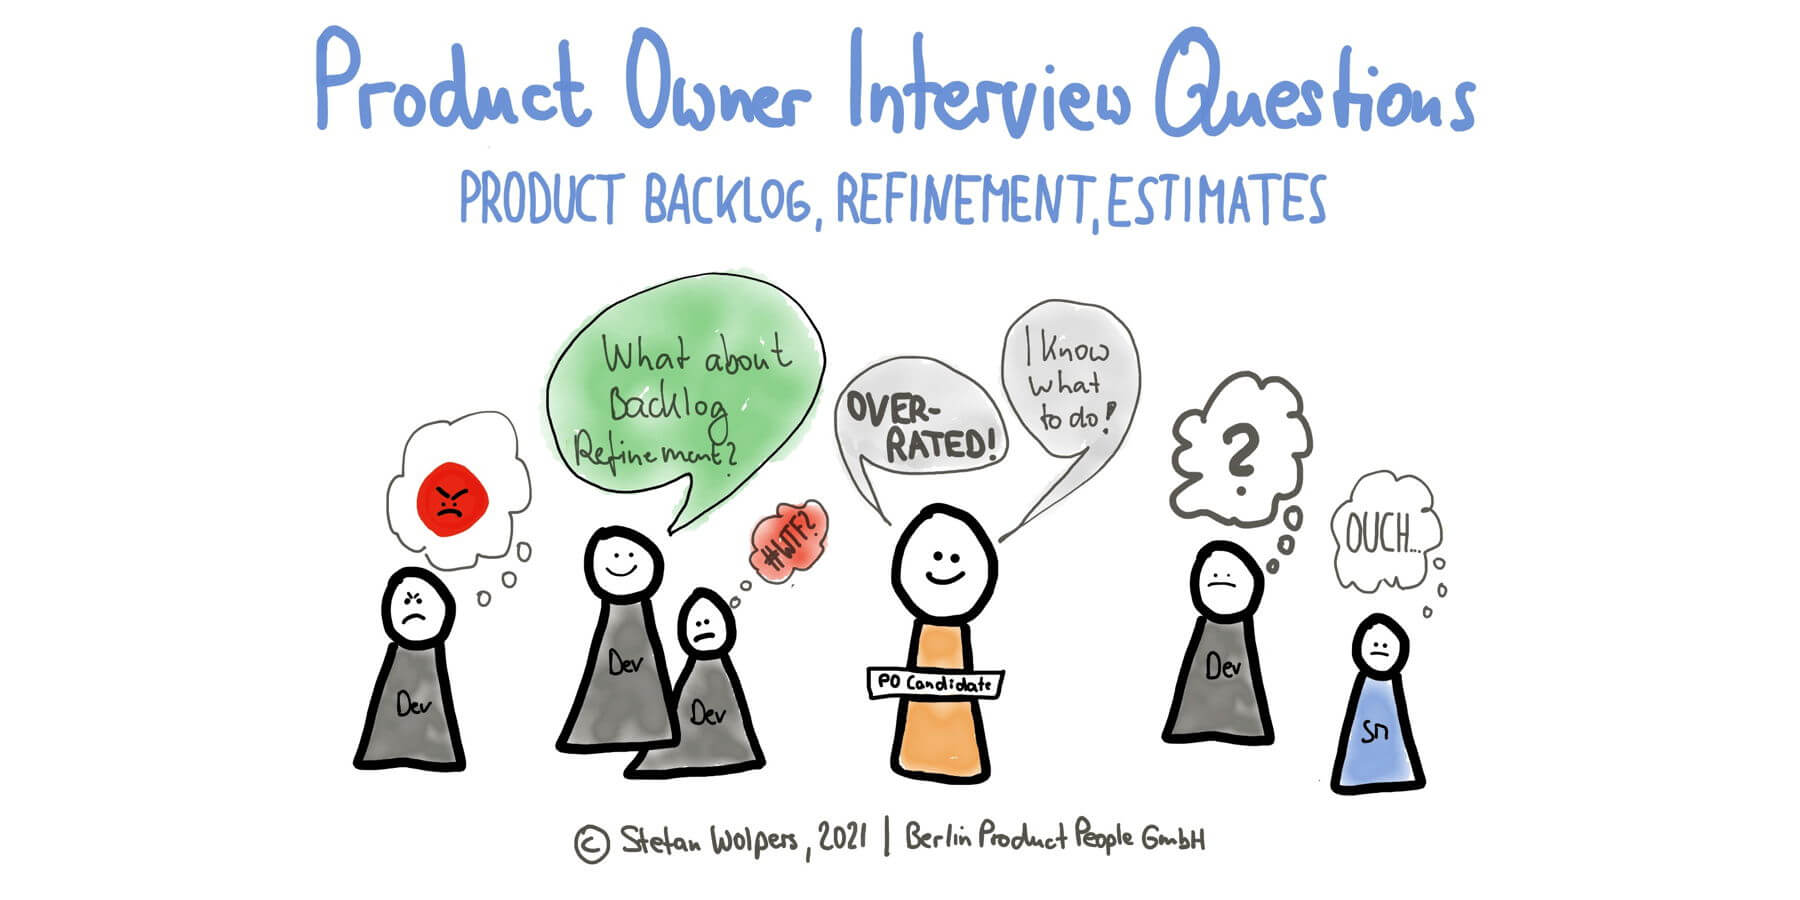 Product Owner Interview Questions — The Product Backlog and Refinement